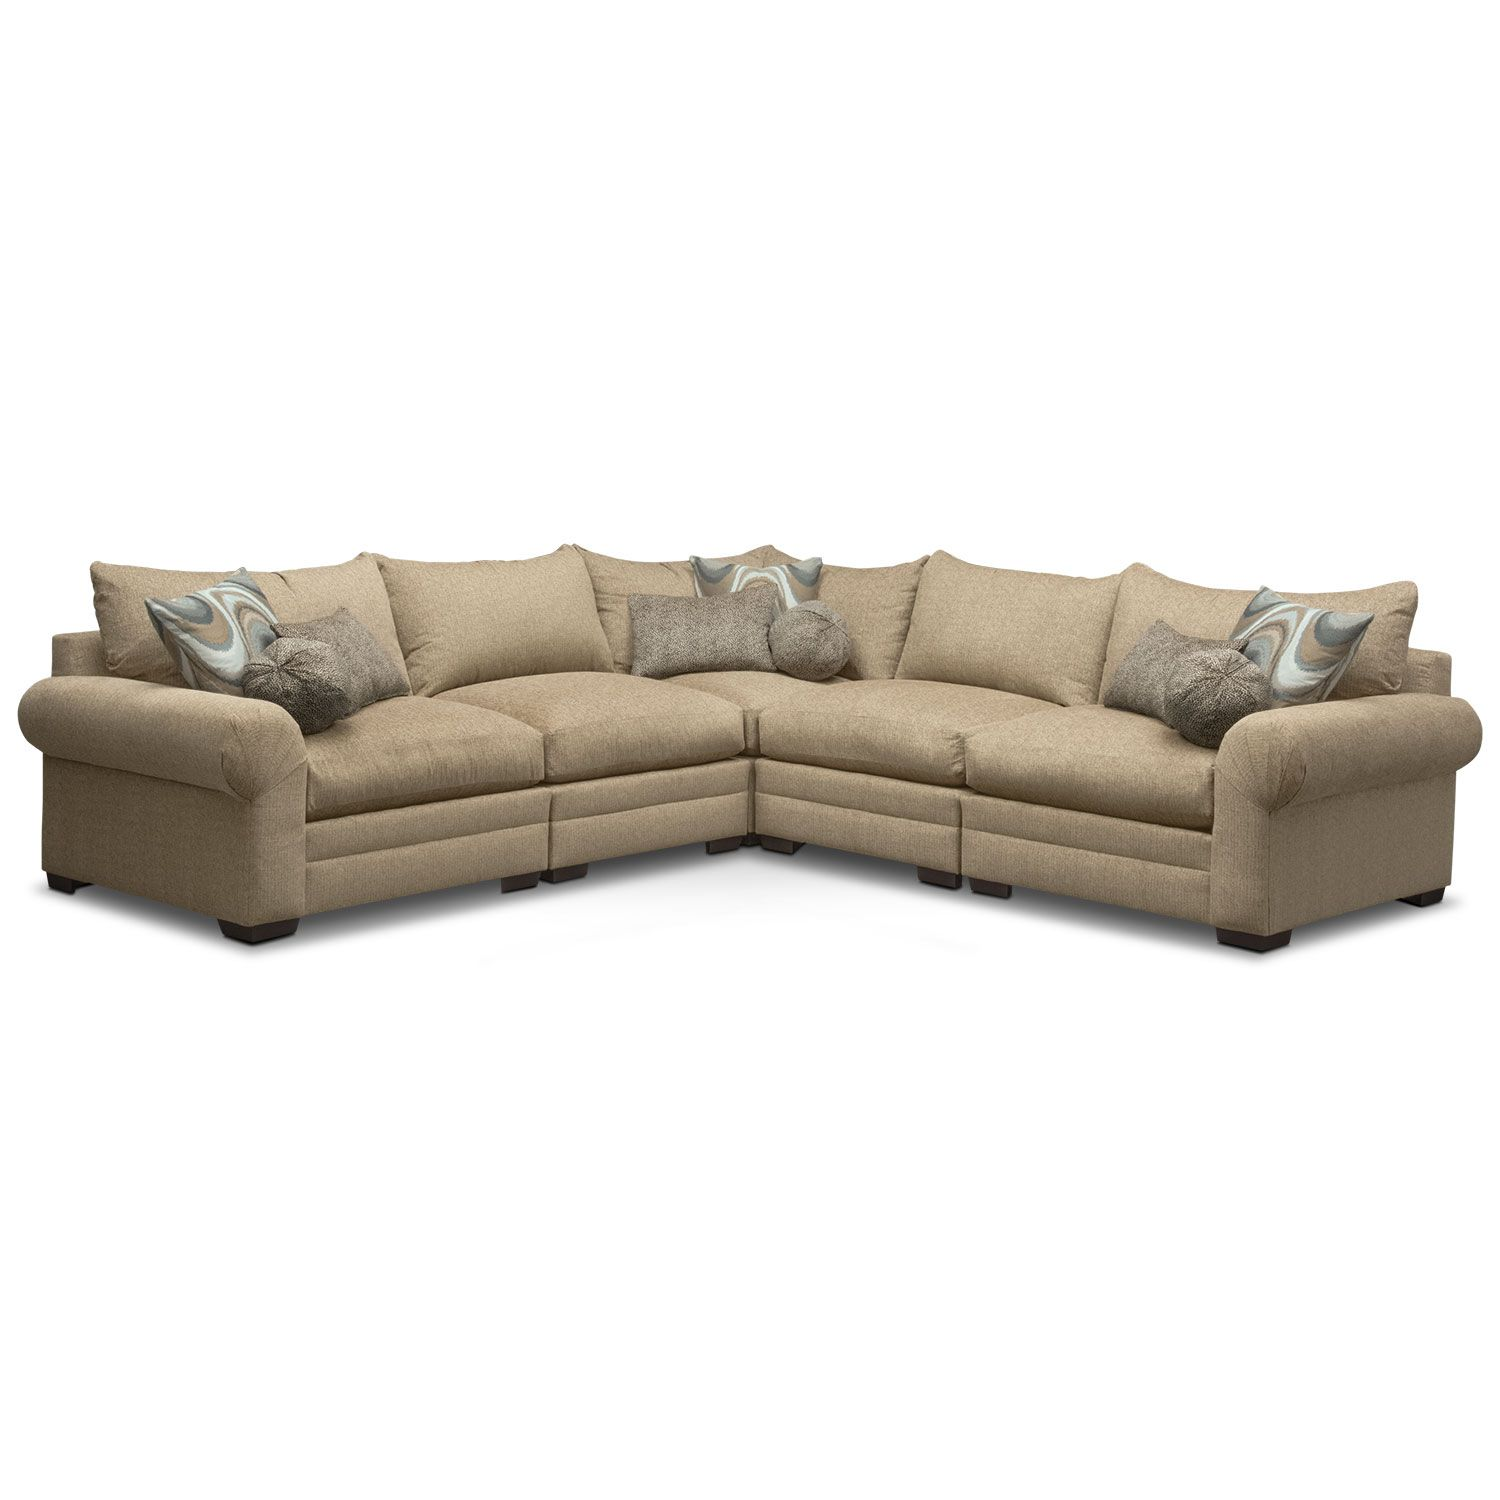 Living Room Furniture Wilshire 5 Piece Sectional Taupe